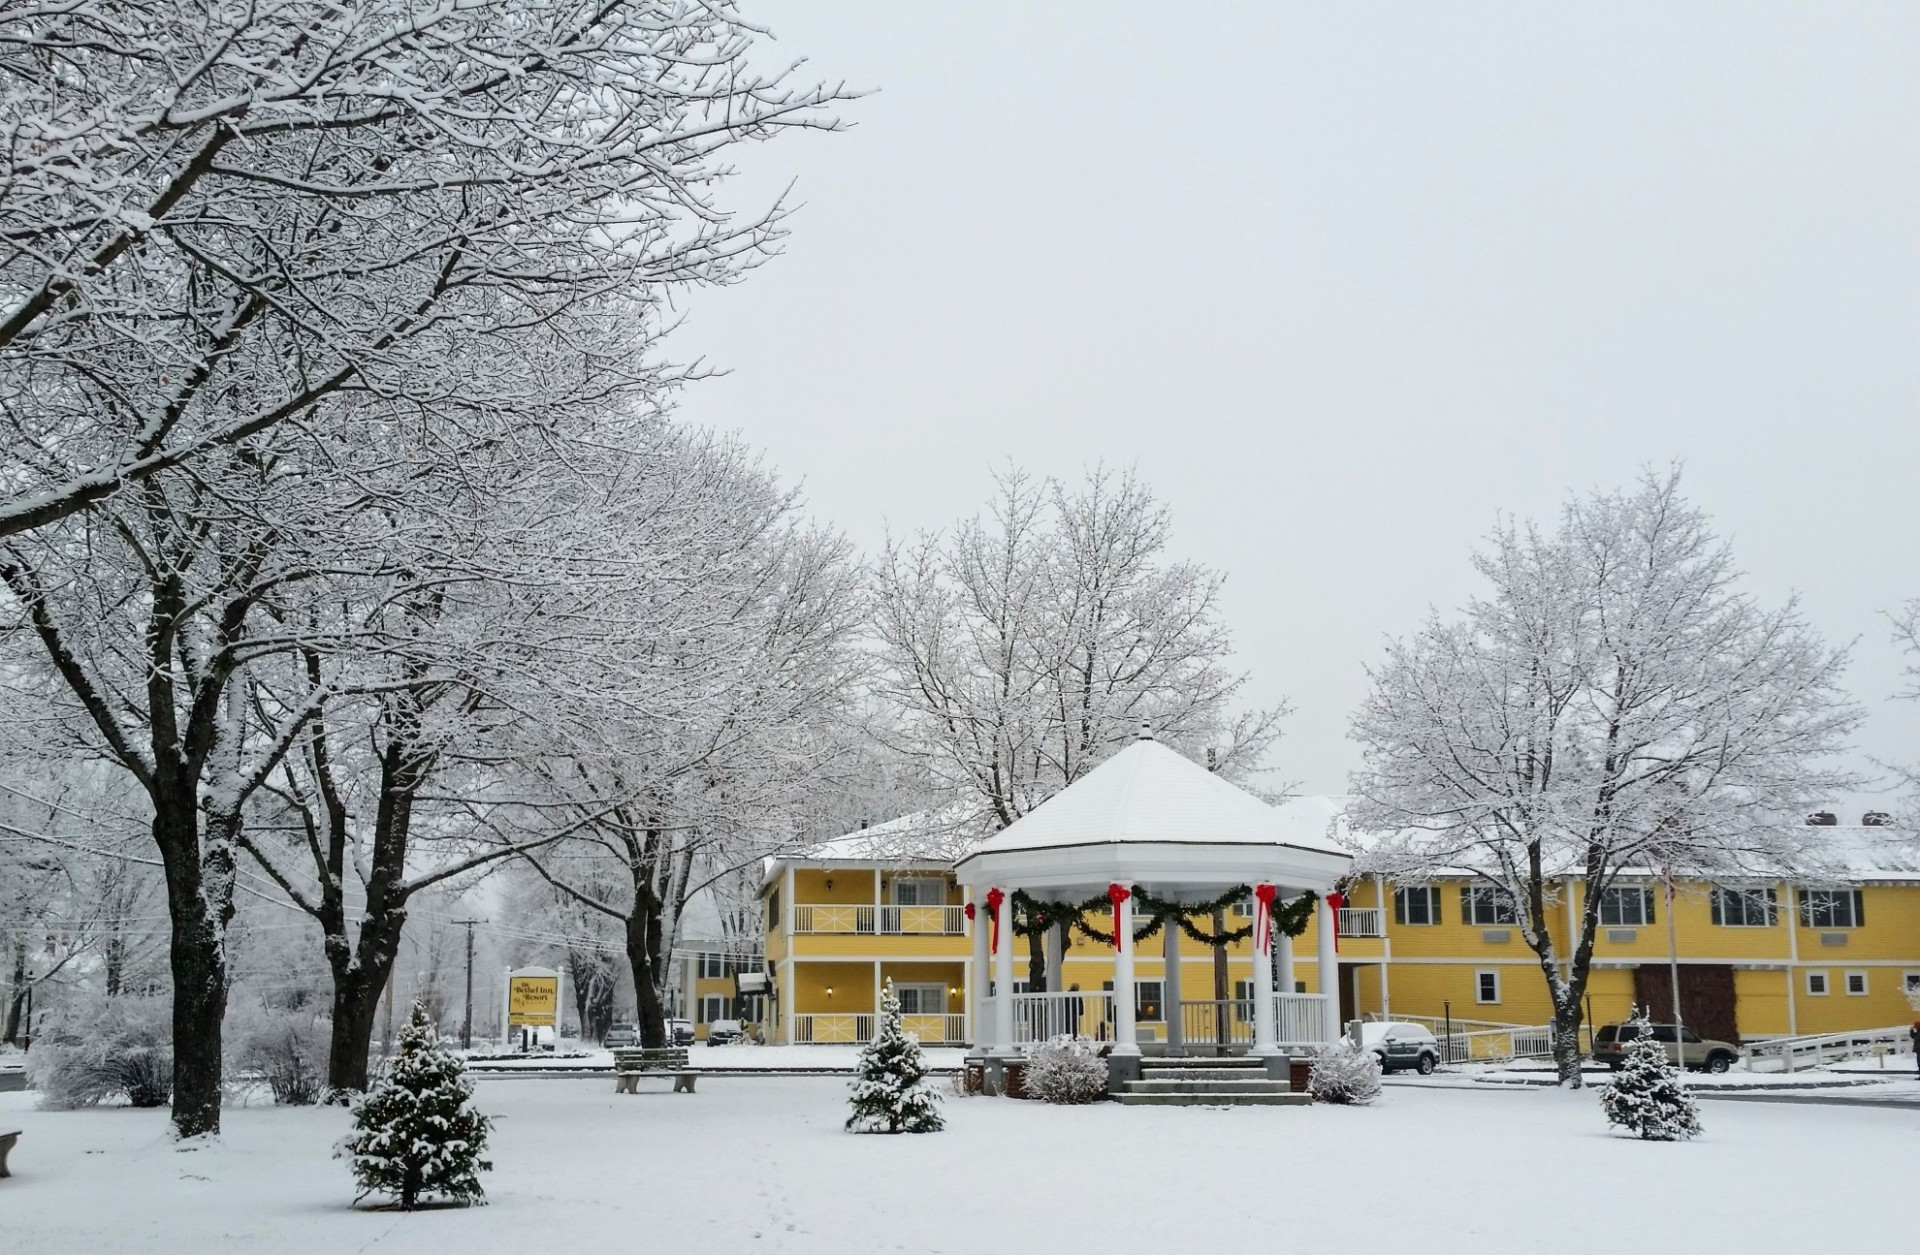 Snowy-Christmas-gazebo-Bethel-Inn-background---Jessie-Perkins-photo-w1980-w1920.jpg